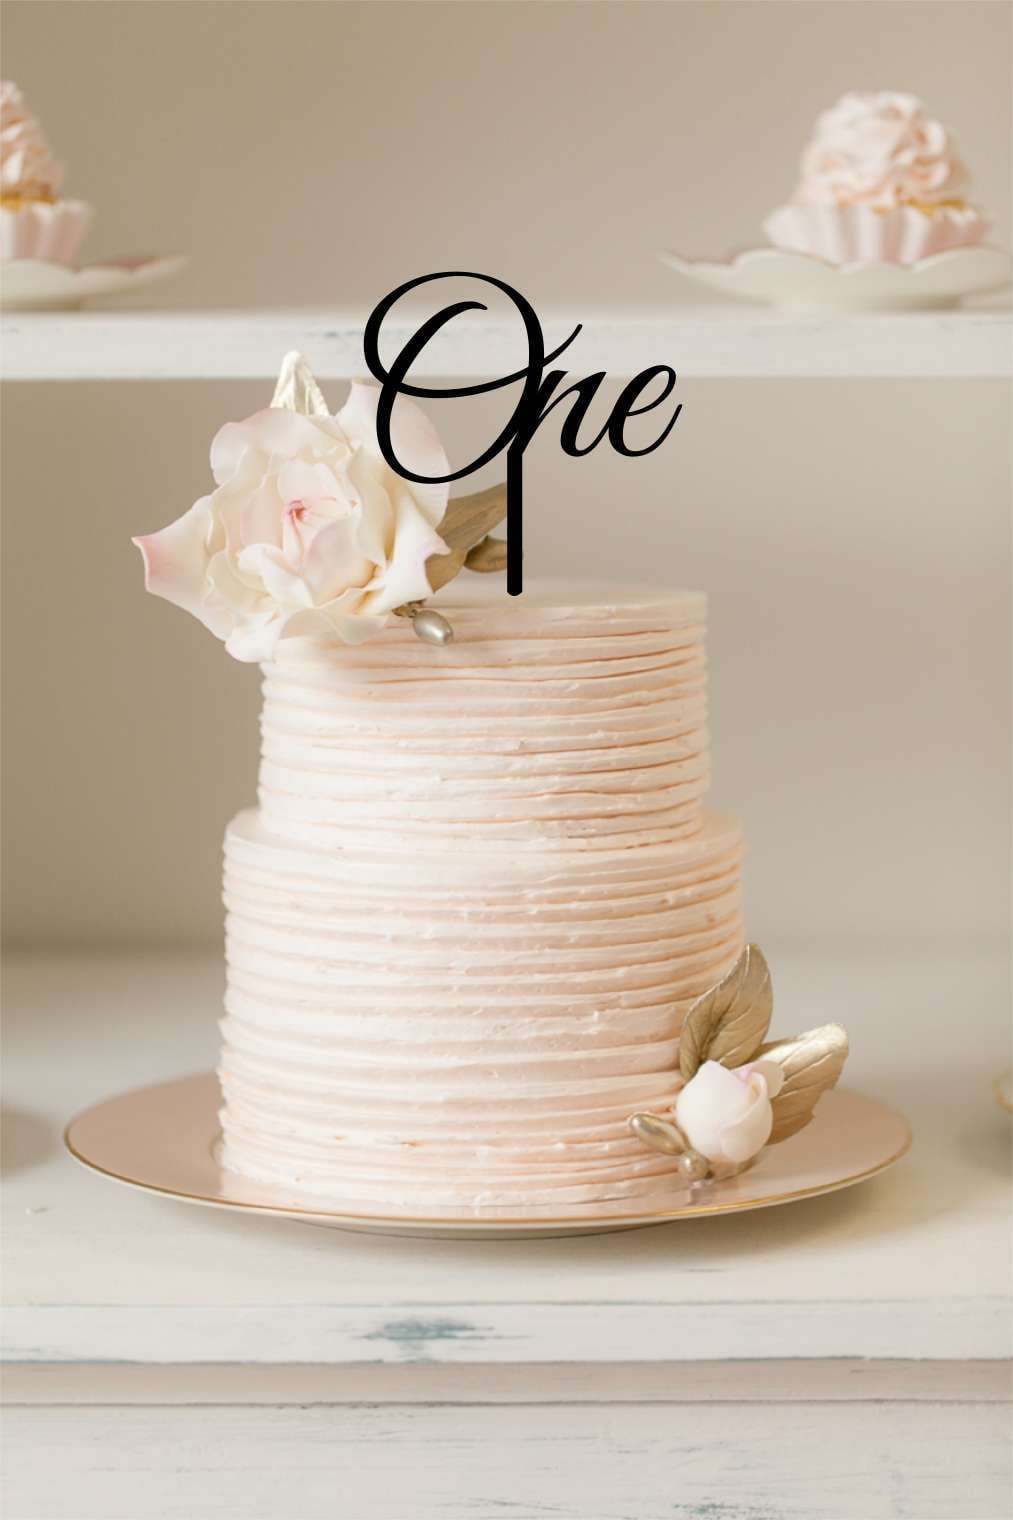 Cake Topper - One - Silver Belle Design